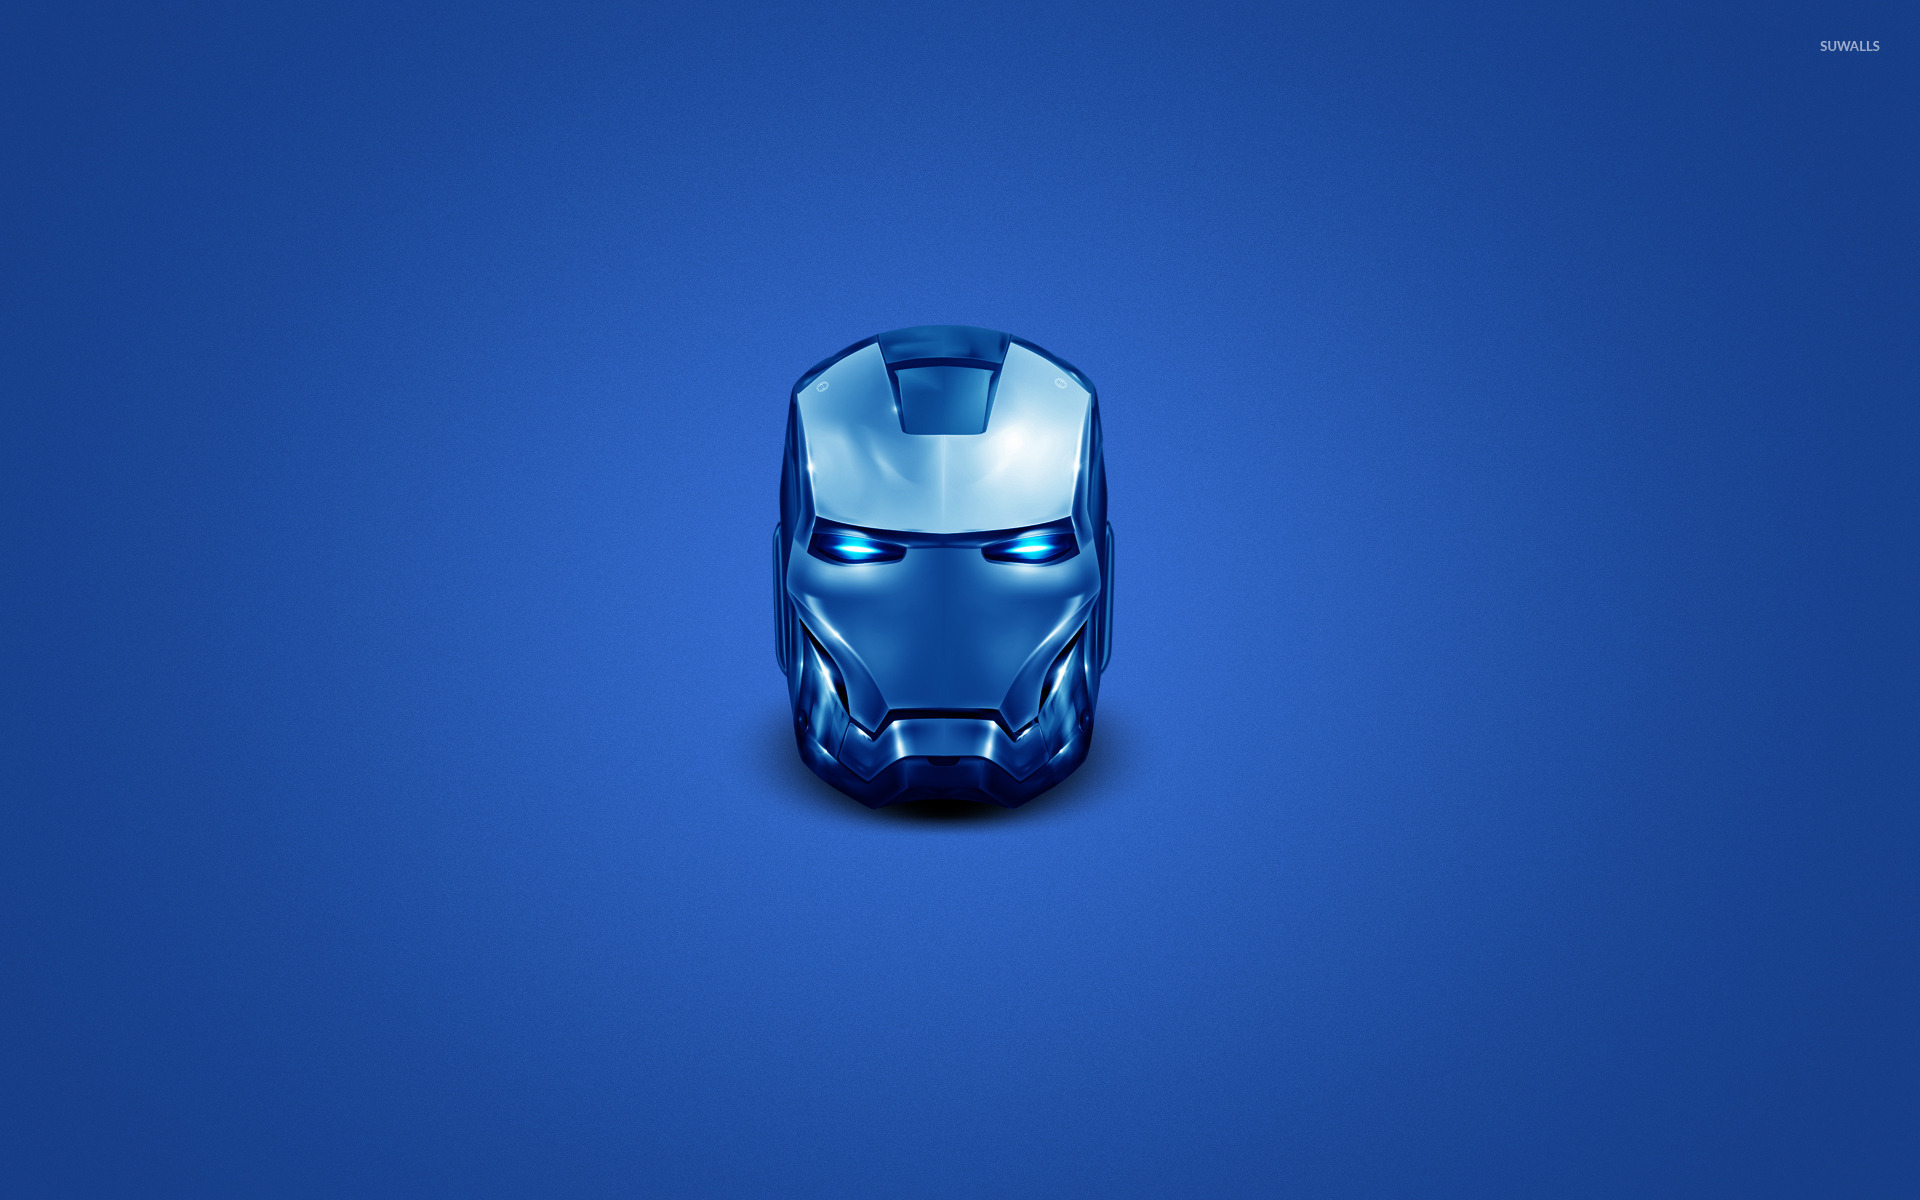 iron man head wallpaper - movie wallpapers - #16398